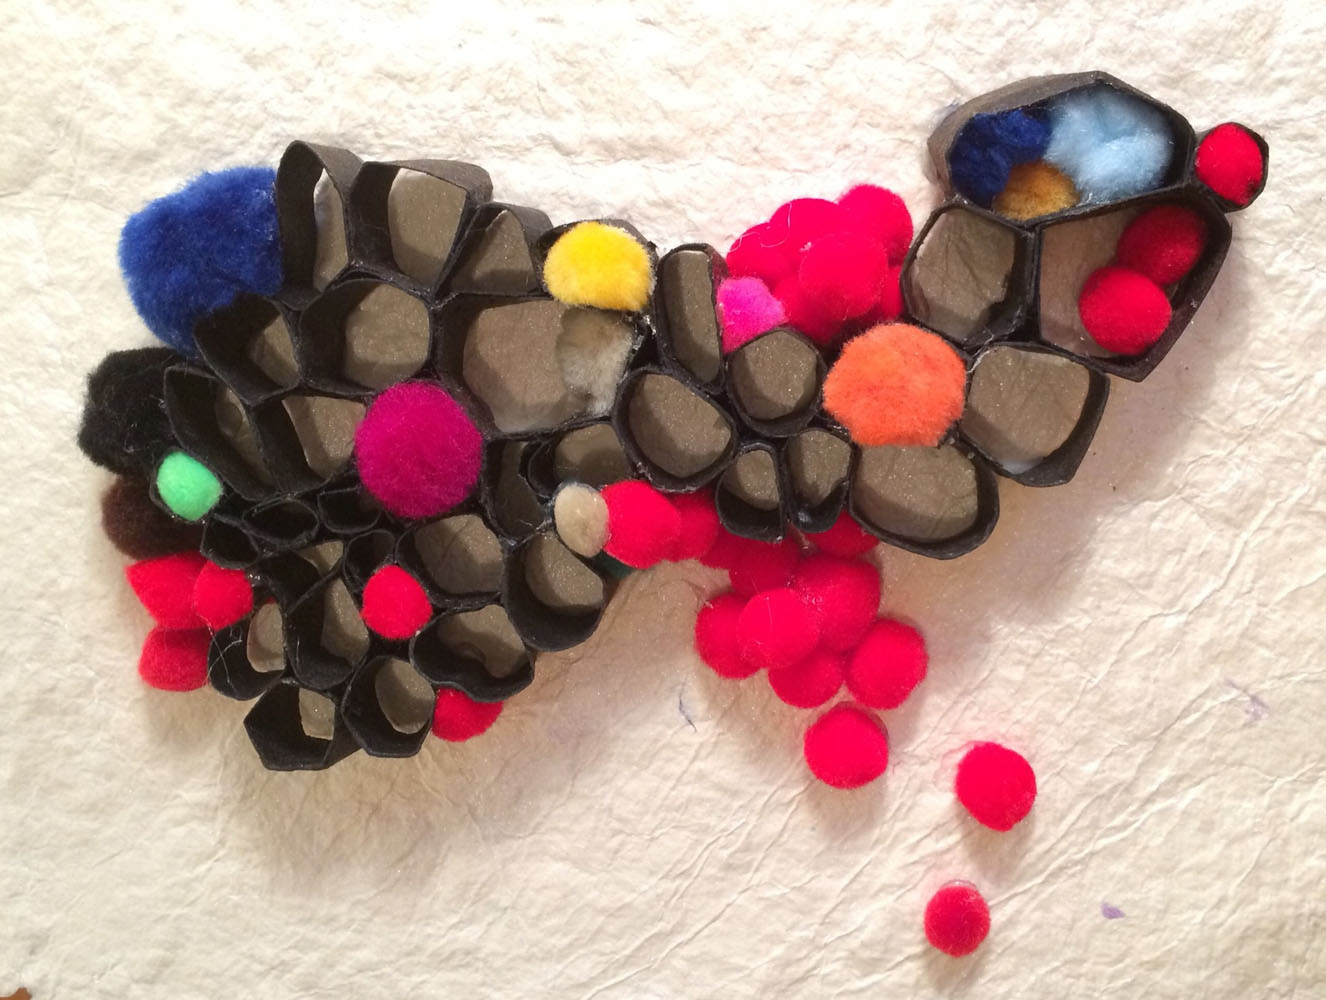 Private Collection, Warsaw, Poland Tar paper, handmade paper & pom poms 2014